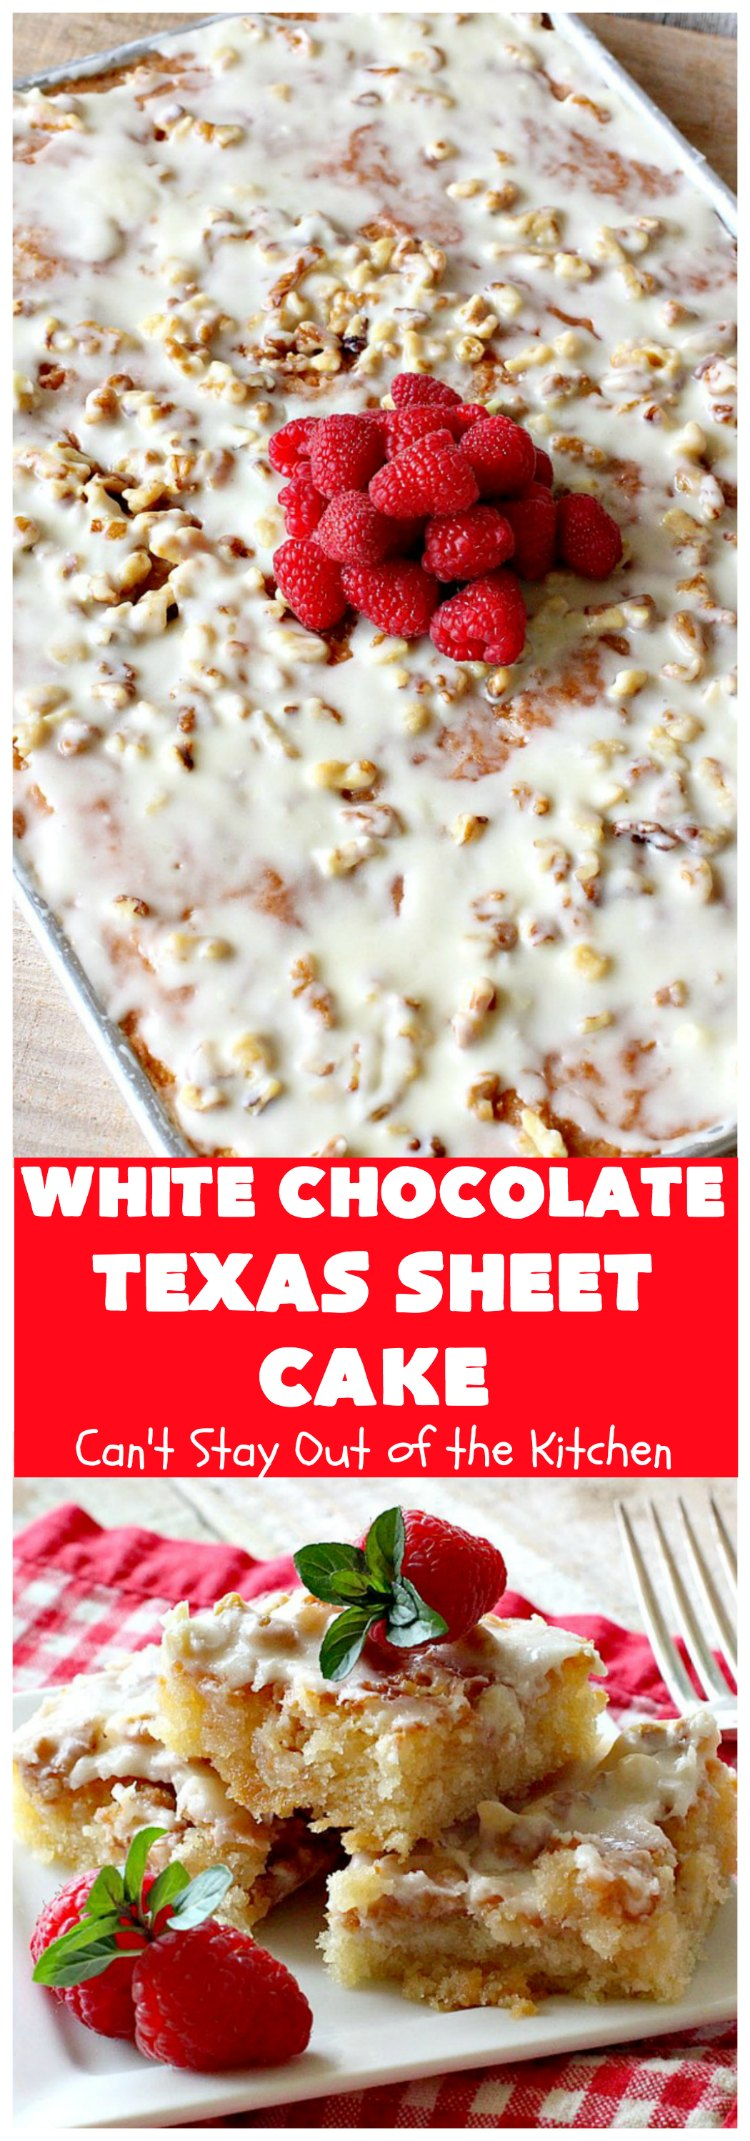 White Chocolate Texas Sheet Cake | Can't Stay Out of the Kitchen | spectacular #TexasSheetCake made with #Ghirardelli #WhiteChocolate instead! Terrific for potlucks, #tailgating parties or any kind of family get-together. #holiday #chocolate #HolidayDessert #ChocolateDessert #WhiteChocolateTexasSheetCake